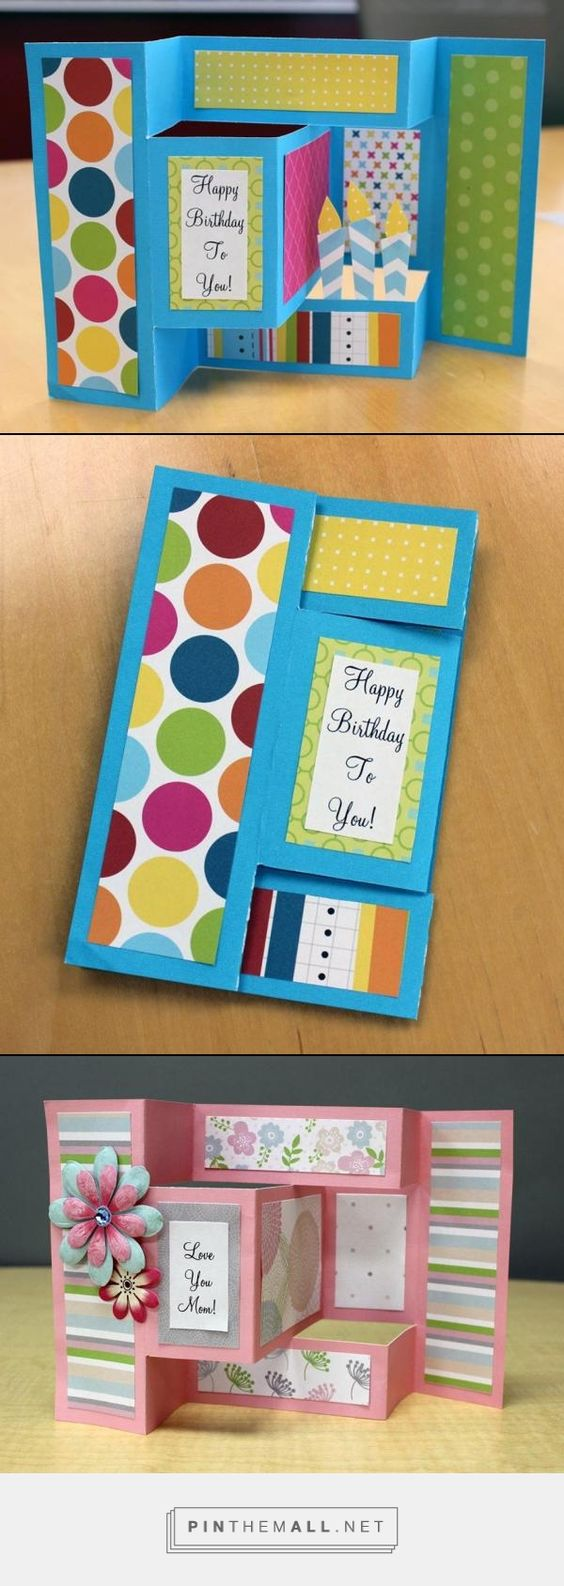 Check out these fun pop-up cards!  The birthday one uses the new Look on the Bright Side paper pack with the base from the Shades of Blue paper pack; the Mother's Day card uses the new Pretty in Pastel paper pack with the base from the Shades of Red paper pack.  Think of all the possibilities!  Simply change the color palette...Father's Day, Friends, Graduation, Christmas, Easter, etc.  Check out the paper packs at www.creativememories.com/user/lstern  created via http://pinthemall.net